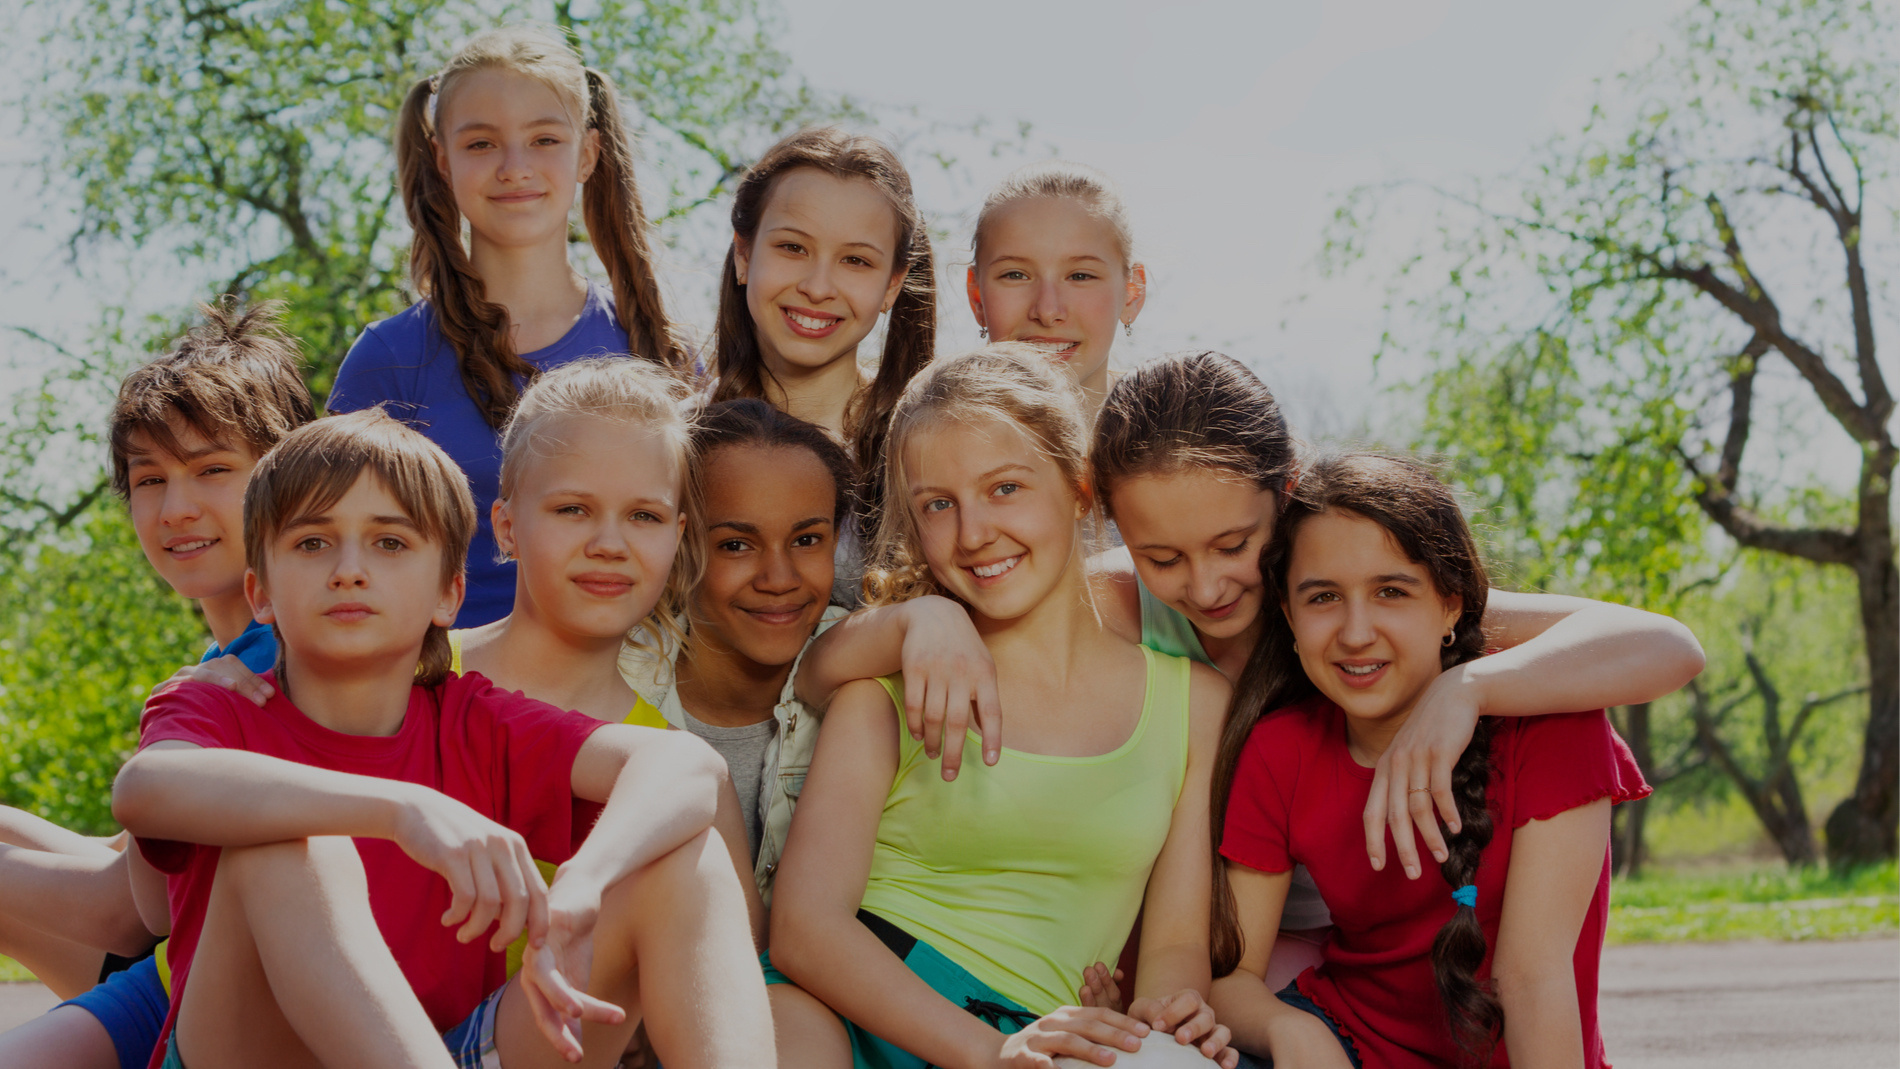 group-of-kids1